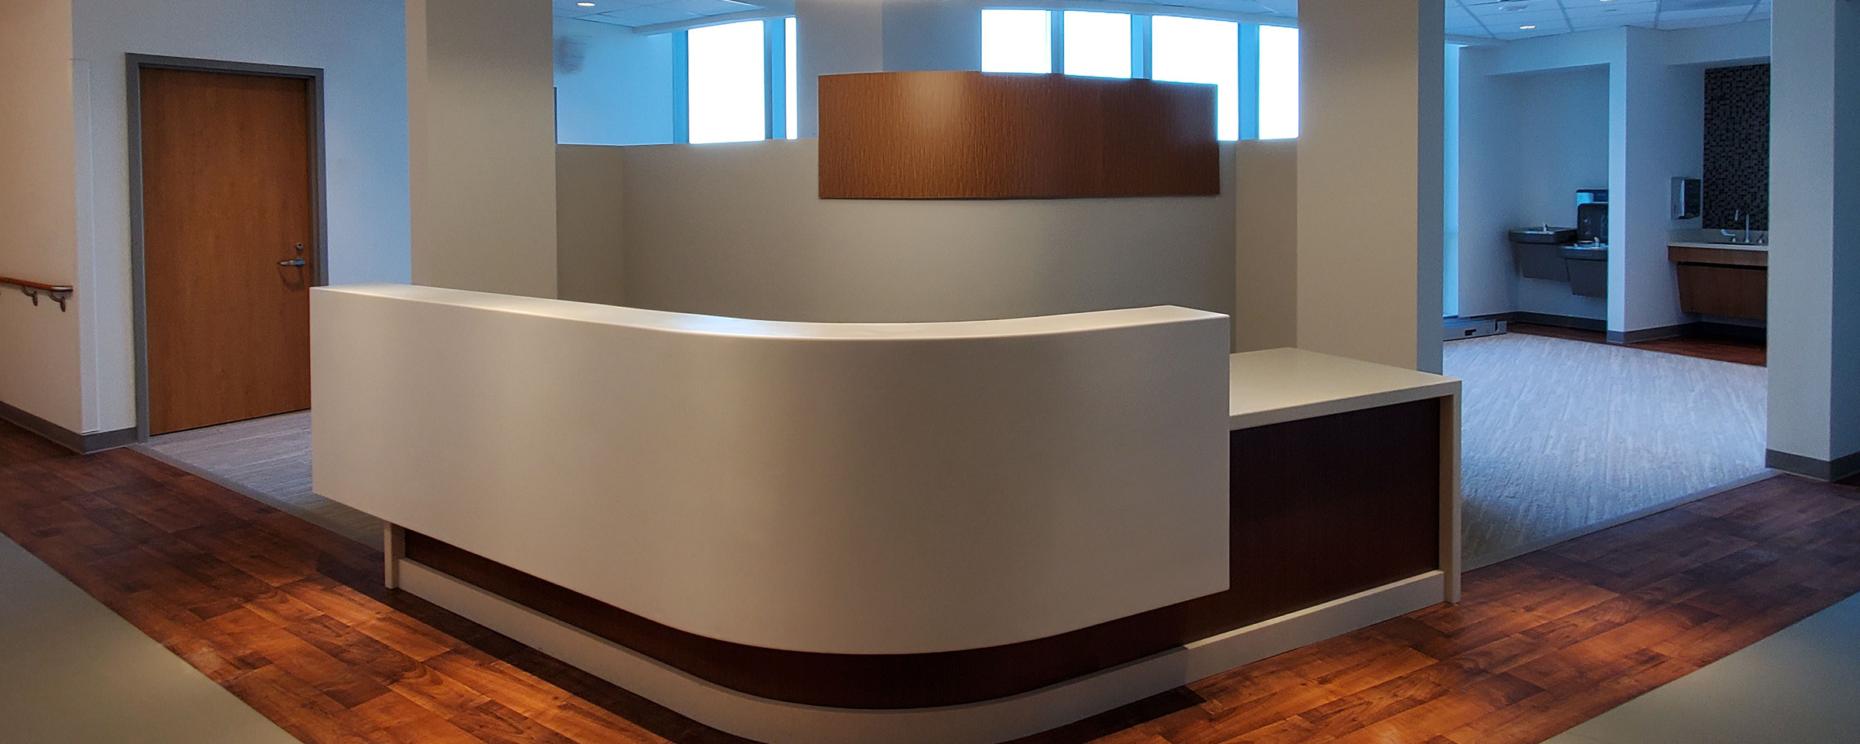 Inova Loudon Hospital North Patient Tower, Leesburg, VA. Nurse's Station Custom Millwork and Solid Surfaces